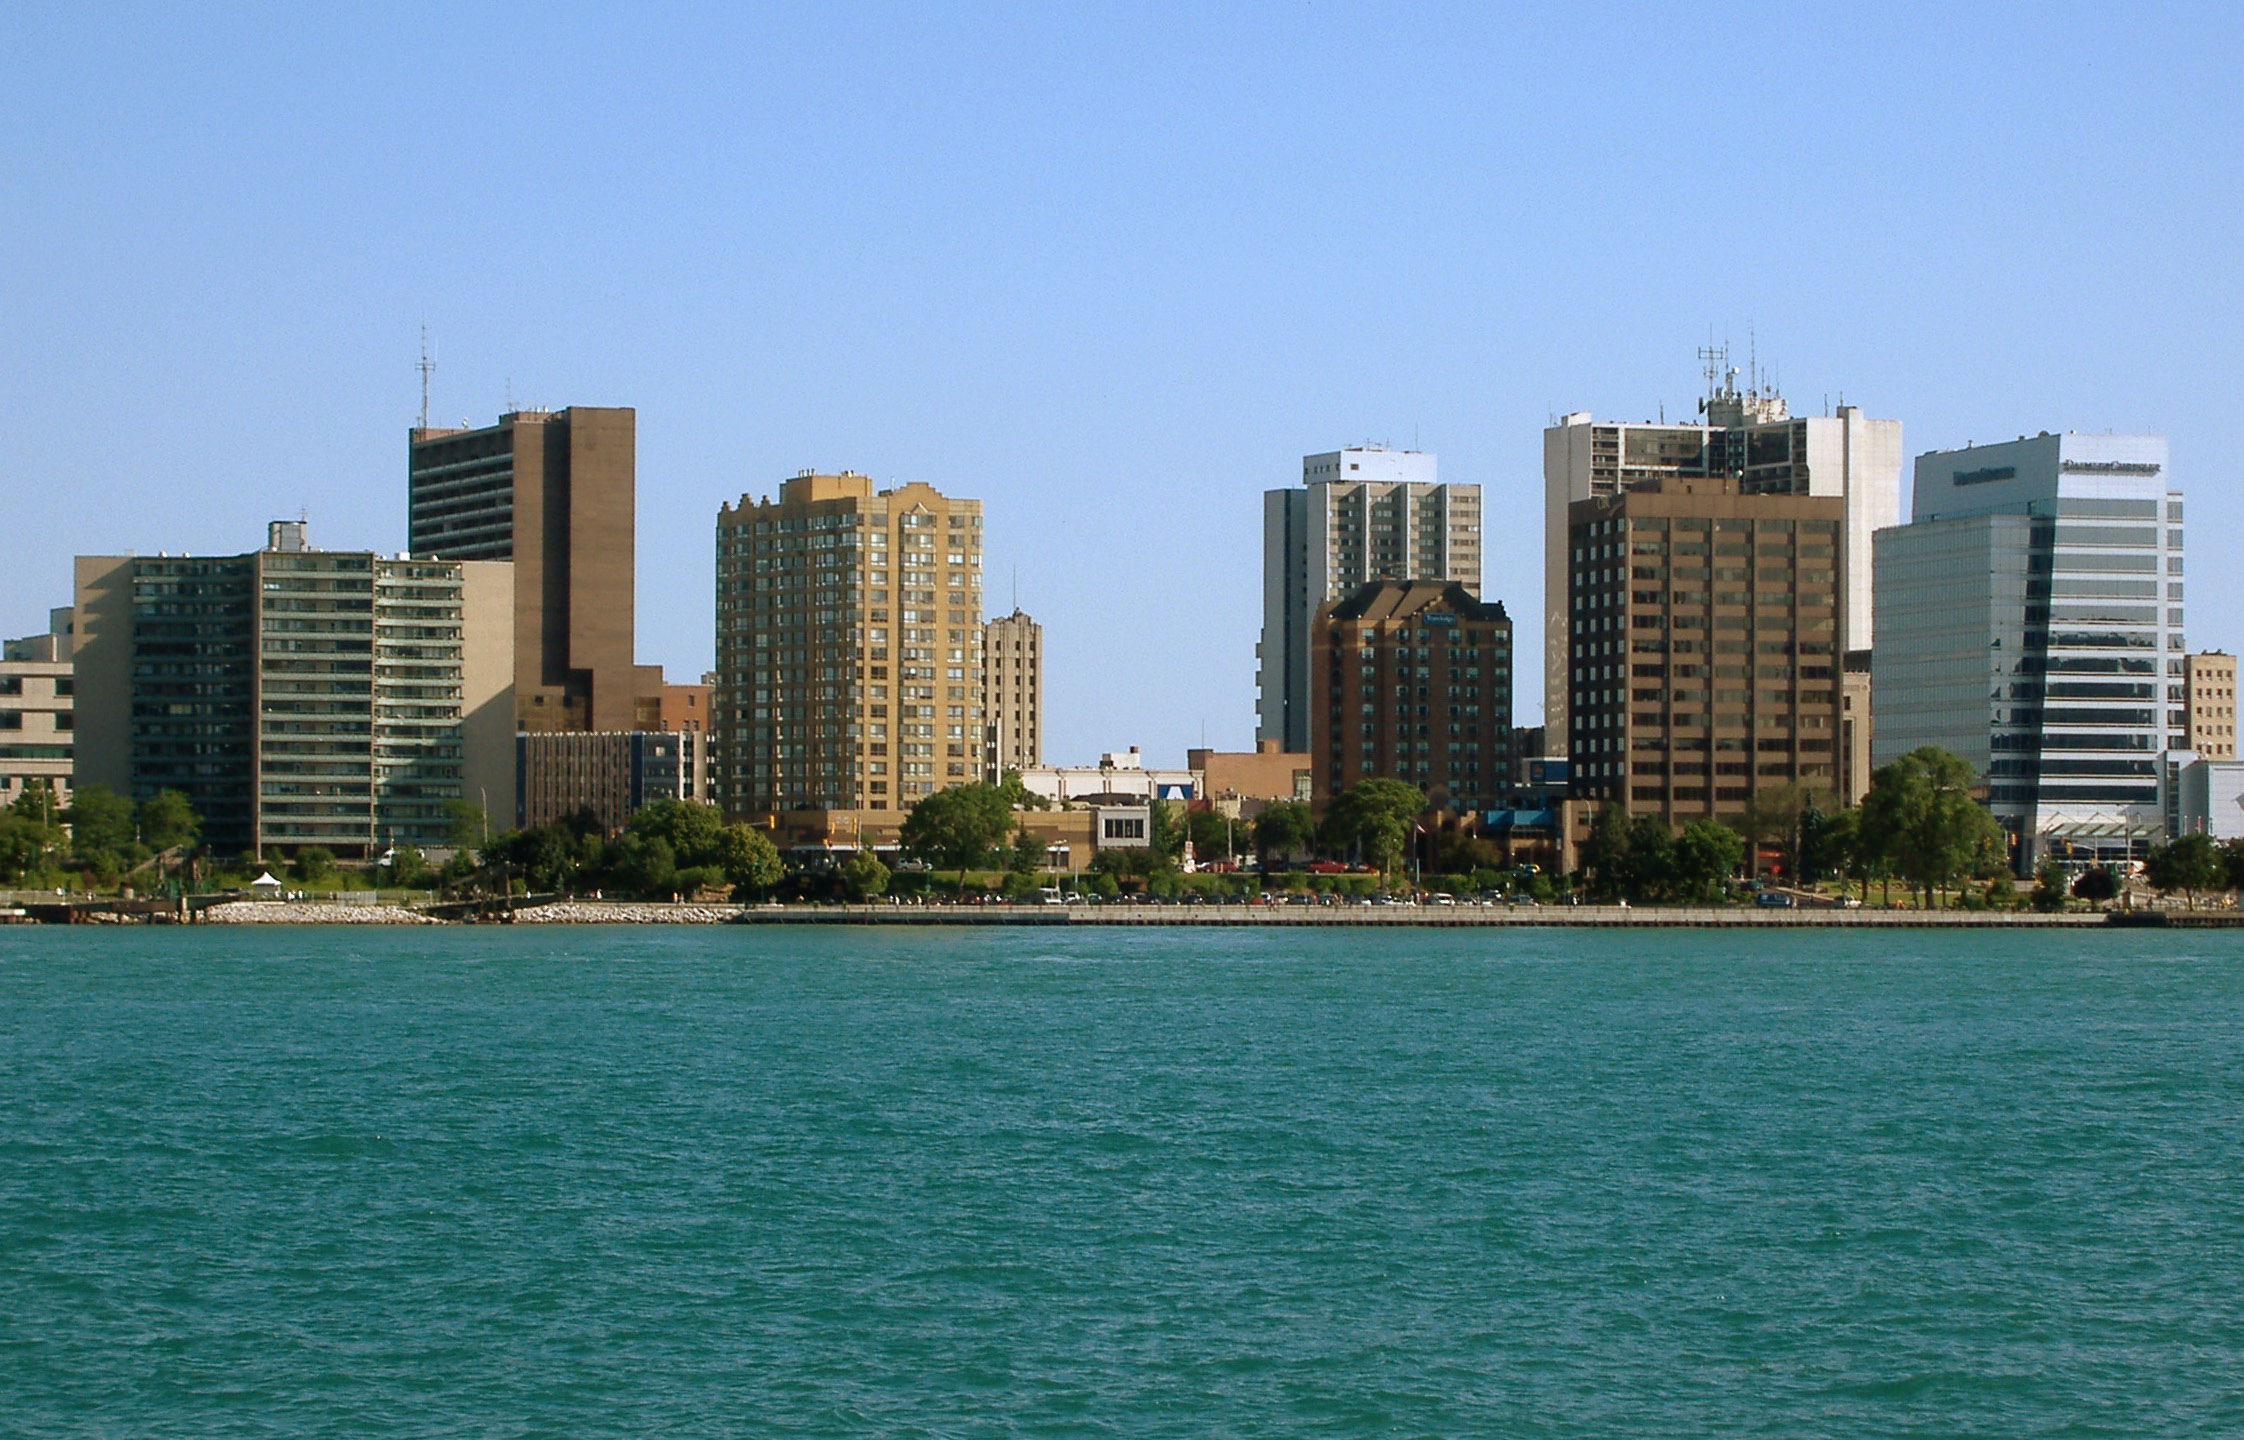 List of tallest buildings in Windsor, Ontario - Wikiwand